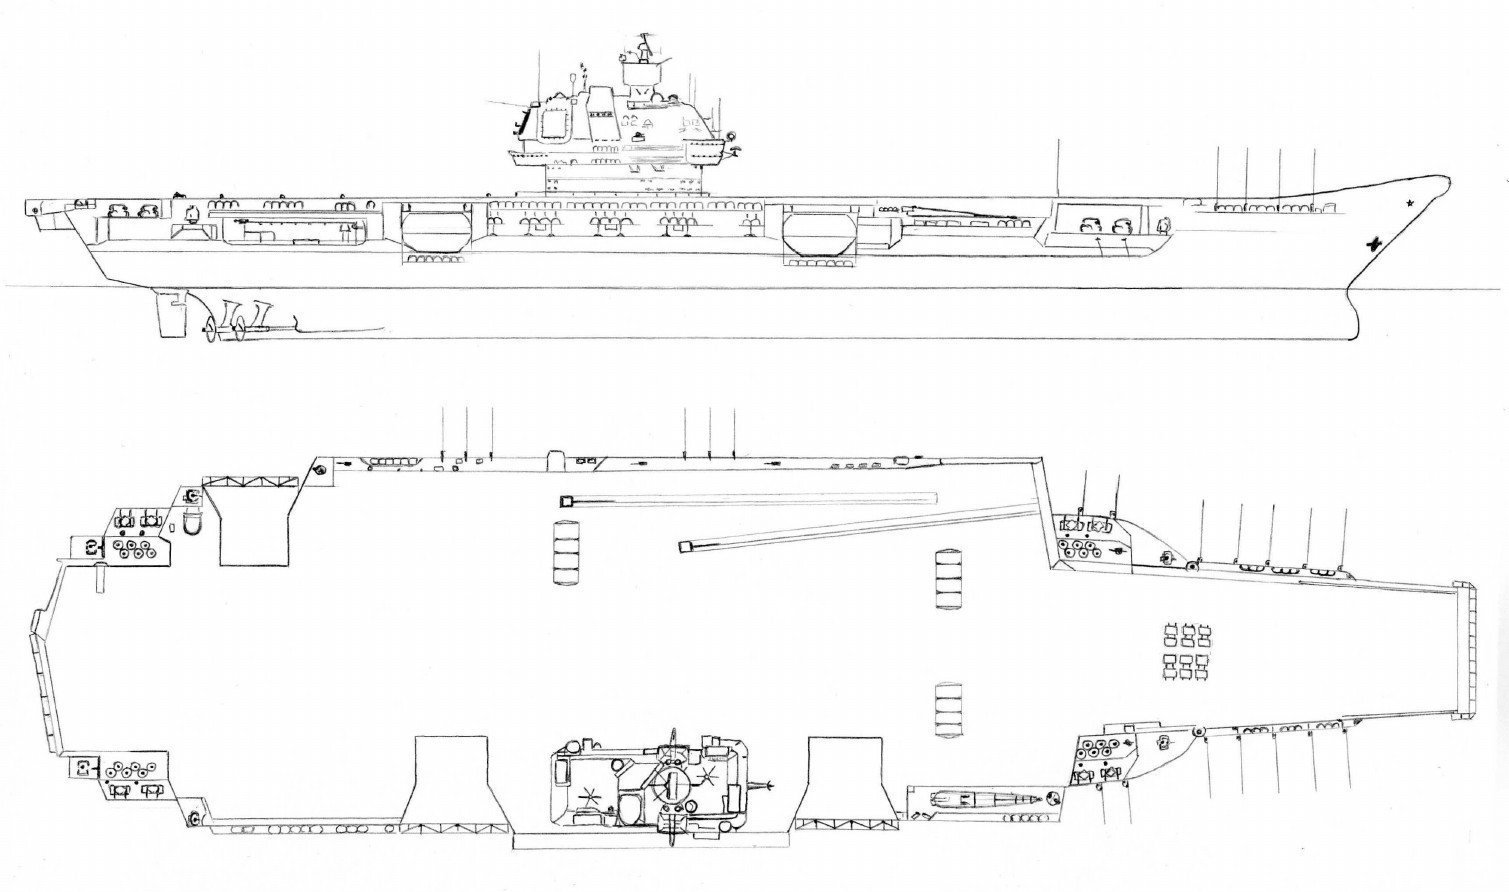 Plans for the Ulyanovsk nuclear aircraft carrier.